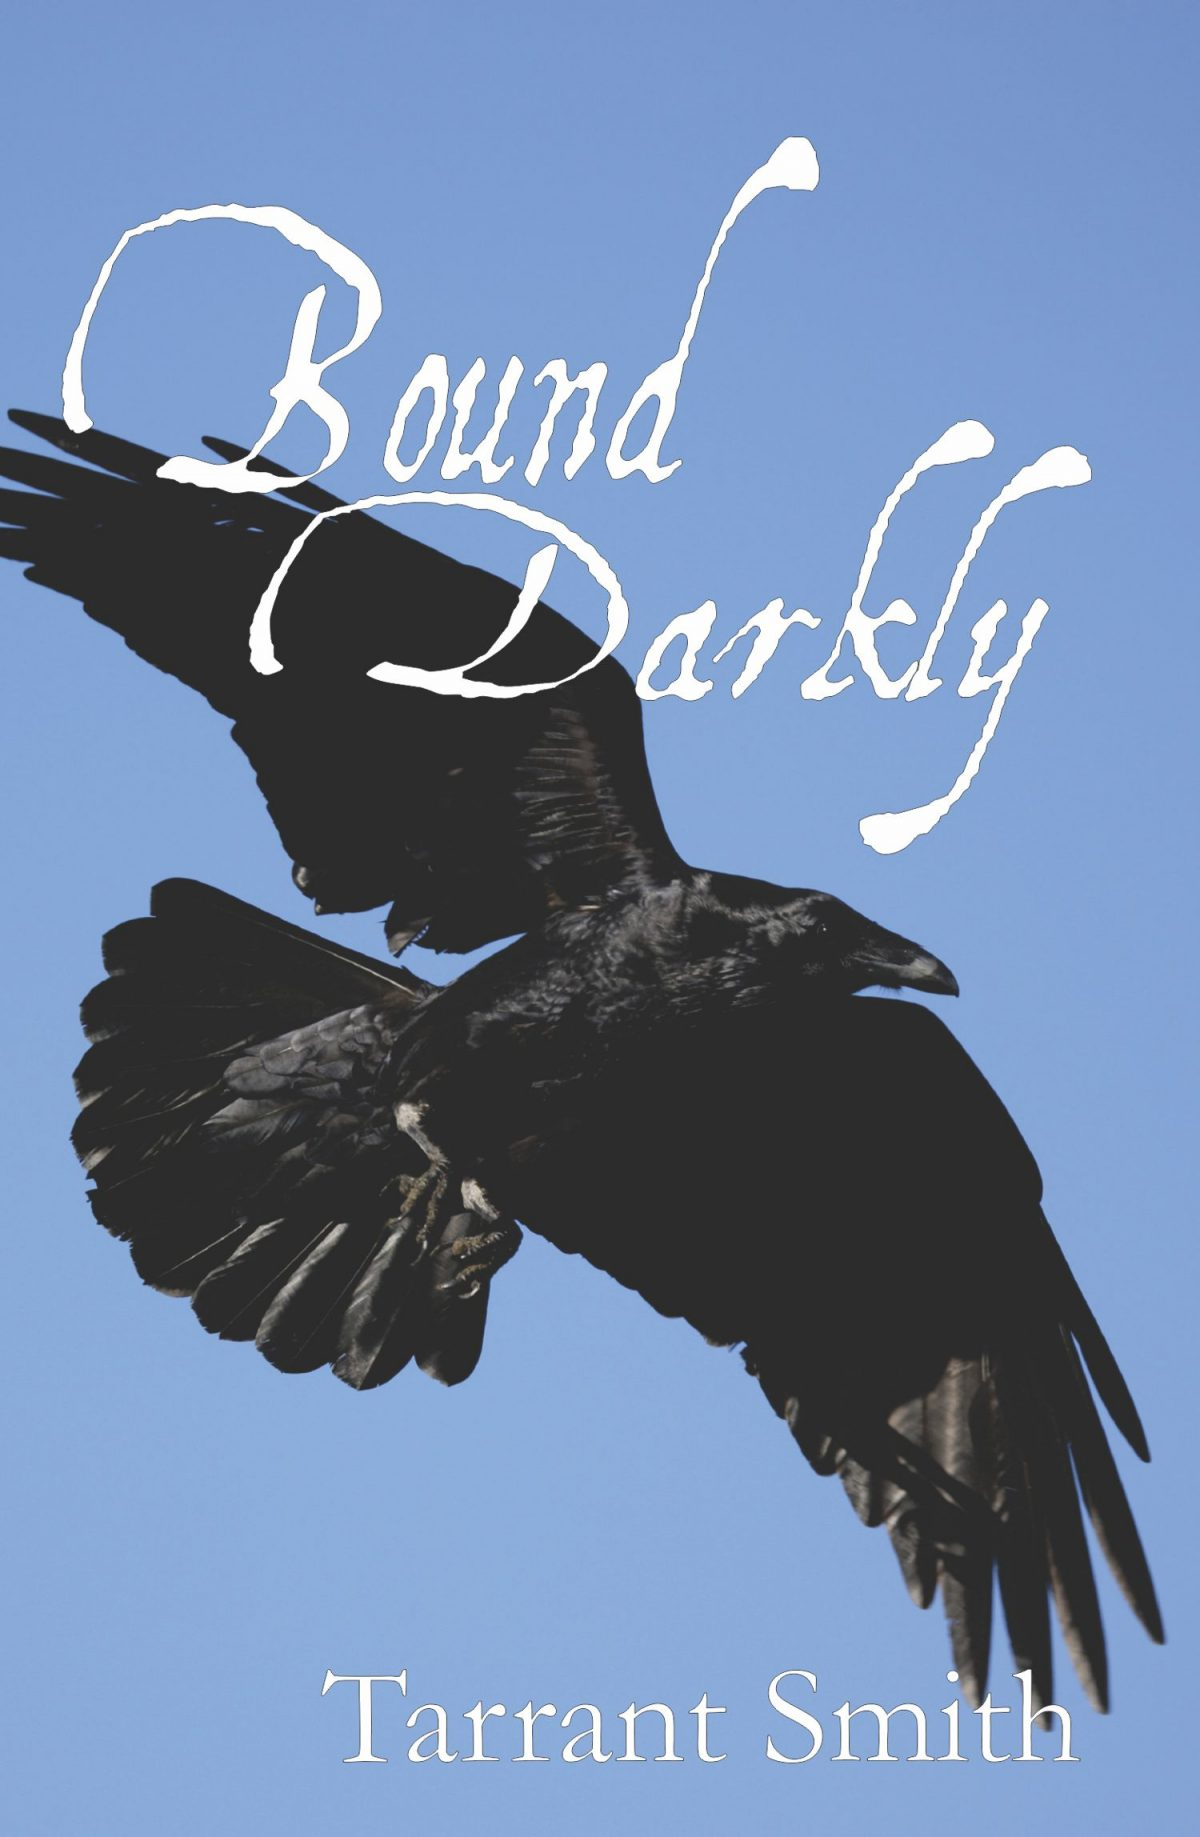 Author Interview: A Proven Warrior (Bound Darkly)